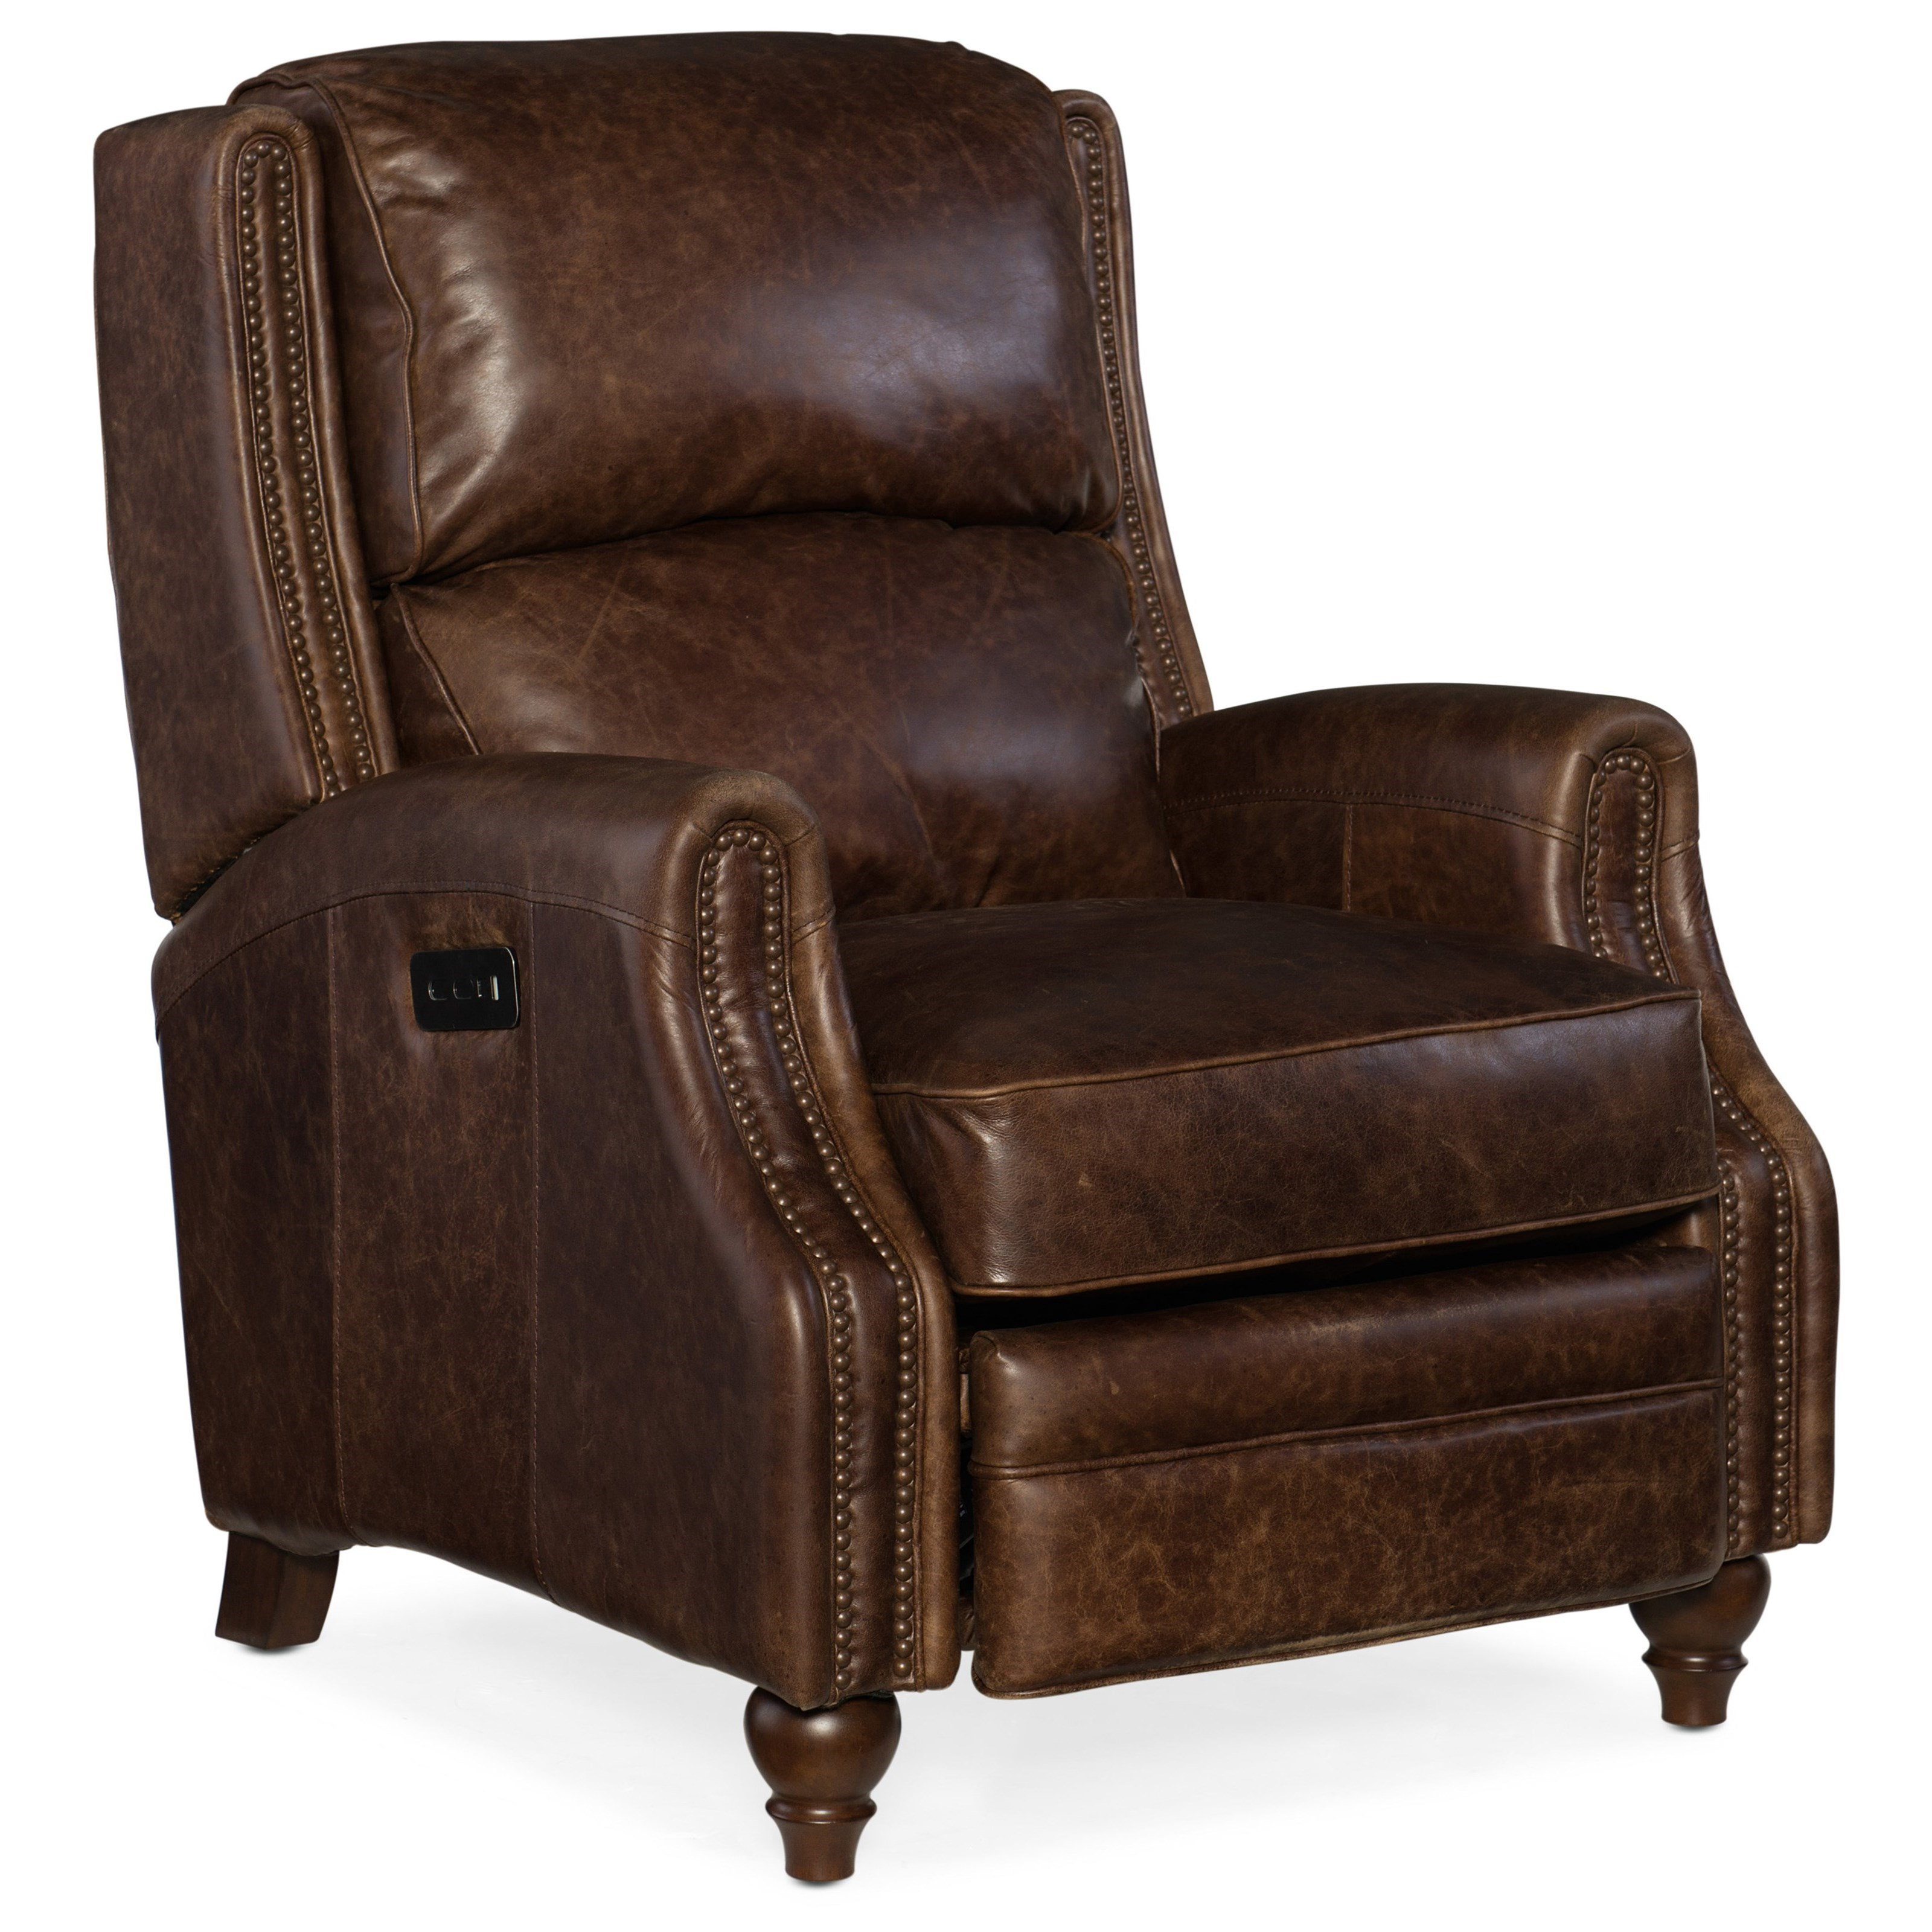 Reclining Chairs Brio Power Recliner with Power Headrest by Hooker Furniture at Baer's Furniture